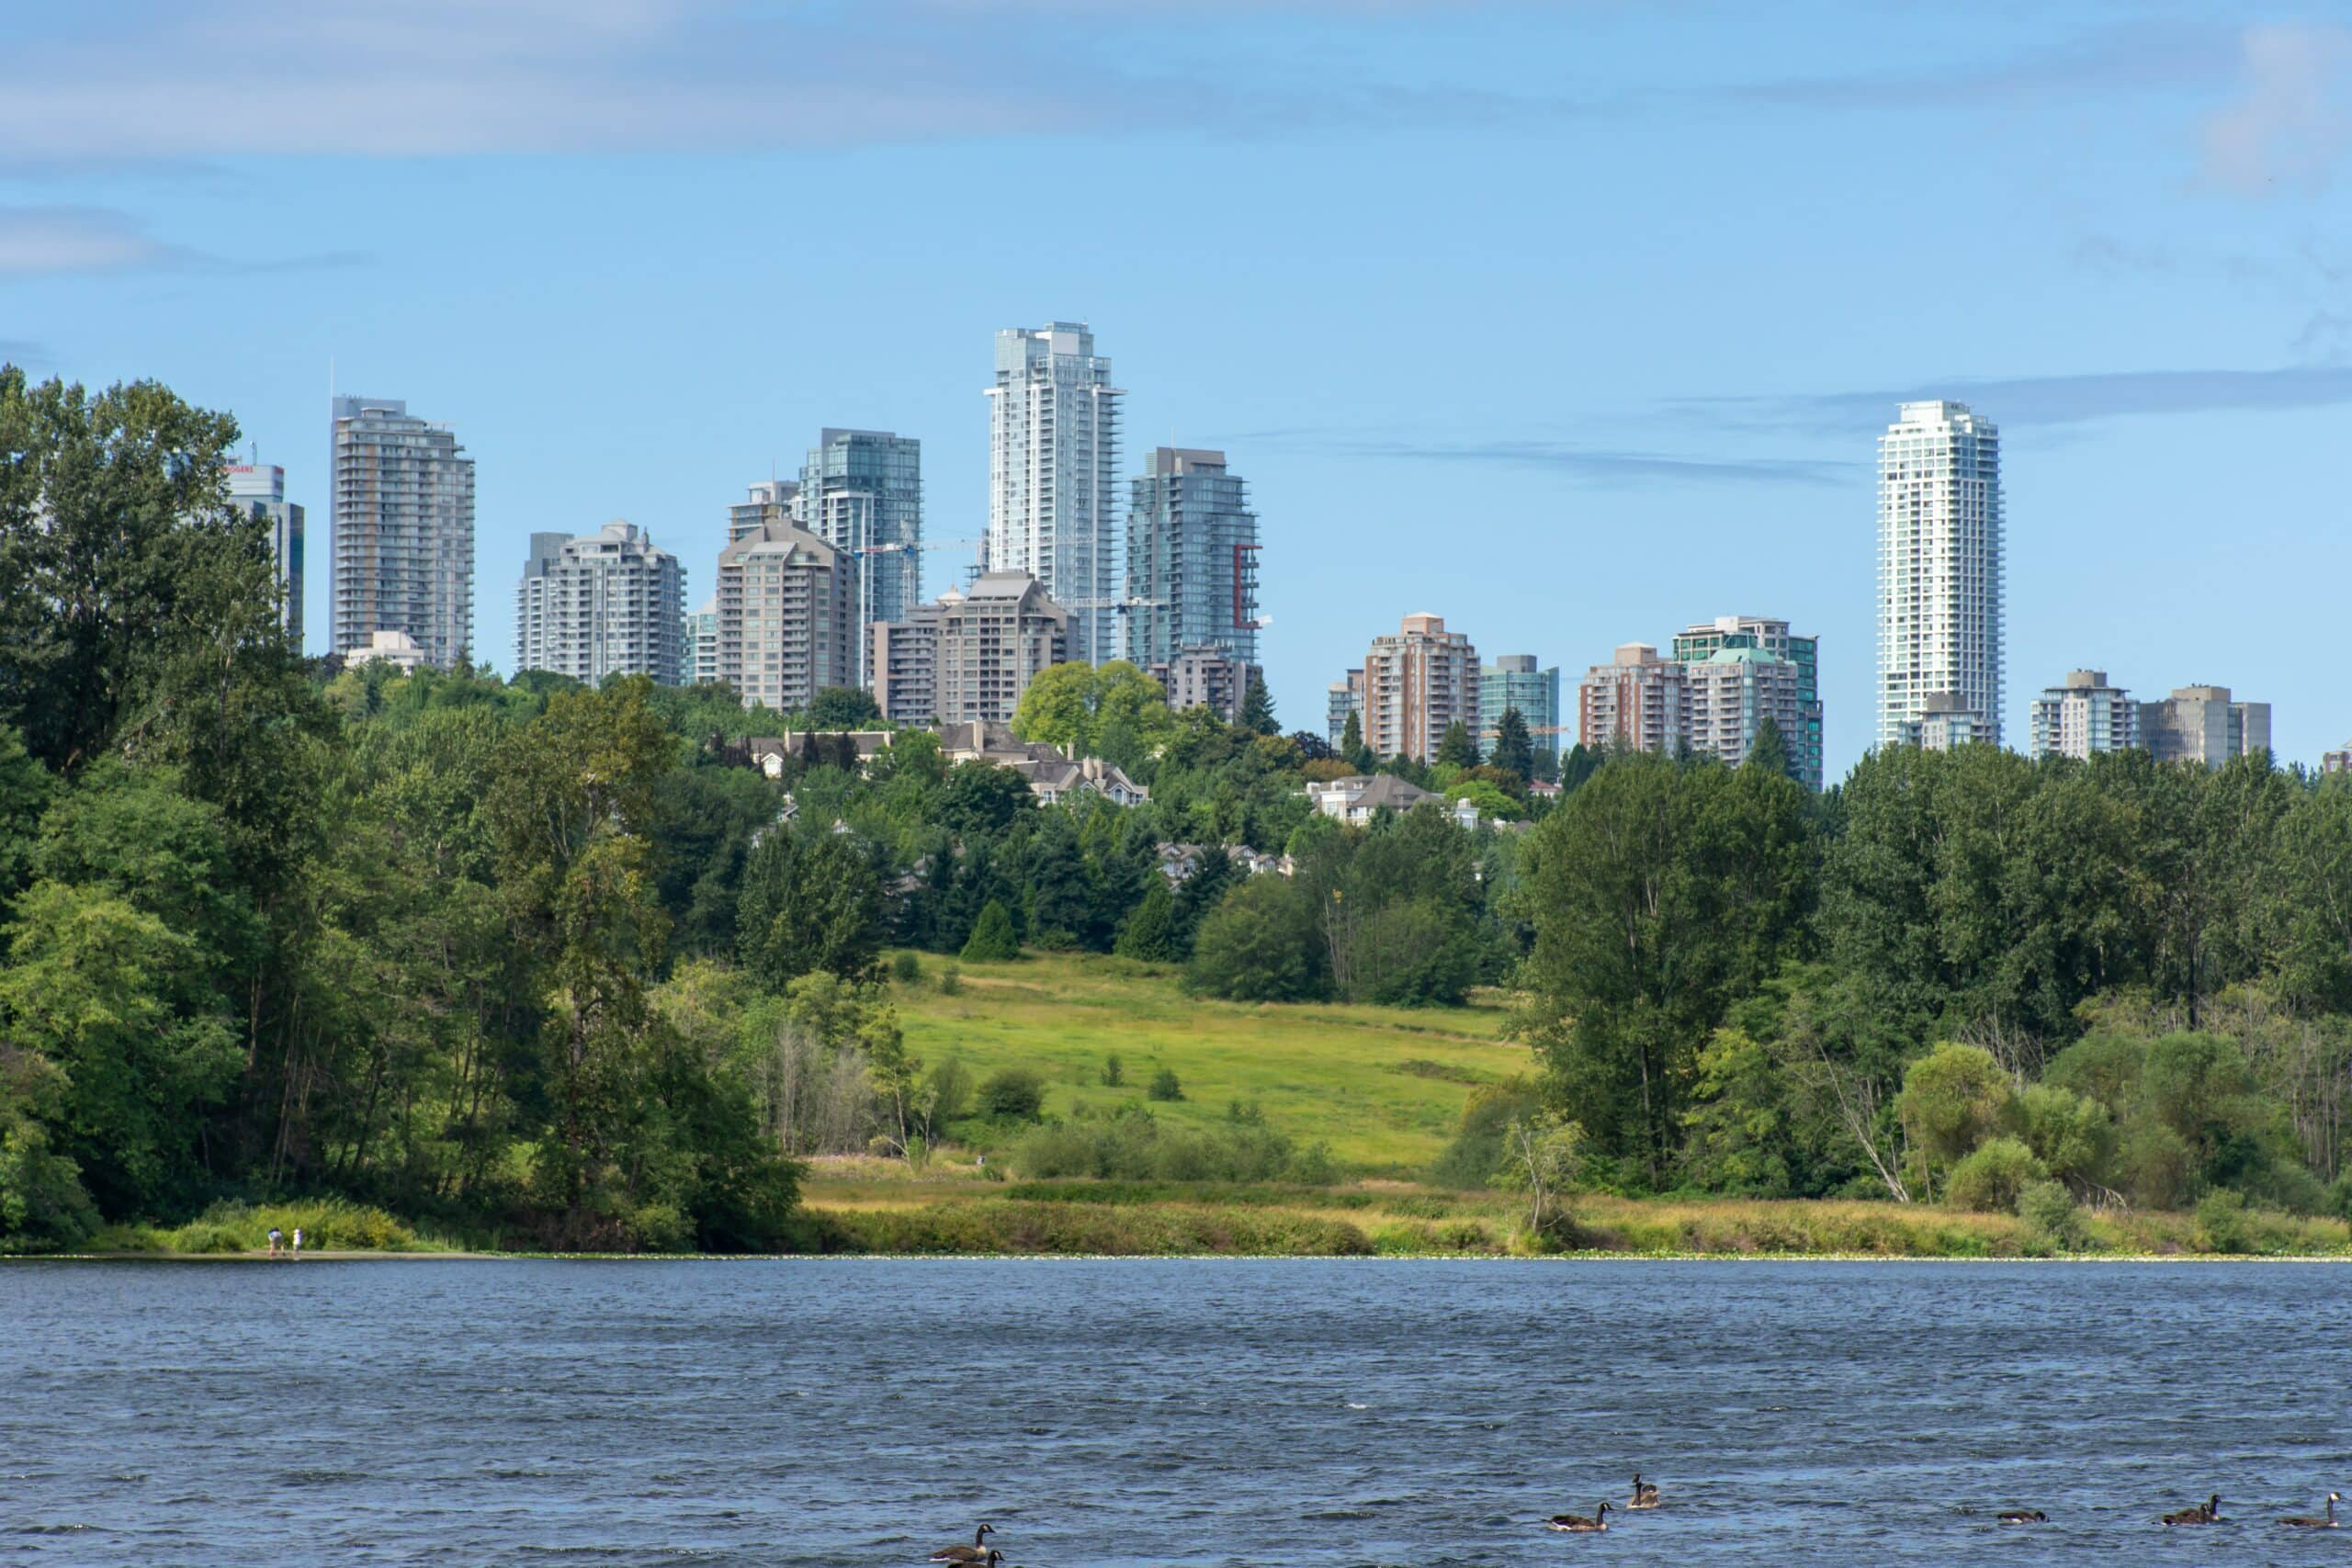 Panorama of Burnaby, British Columbia, Canada skyline from Deer Lake looking towards Metrotown and apartment complexes on a sunny summer day.